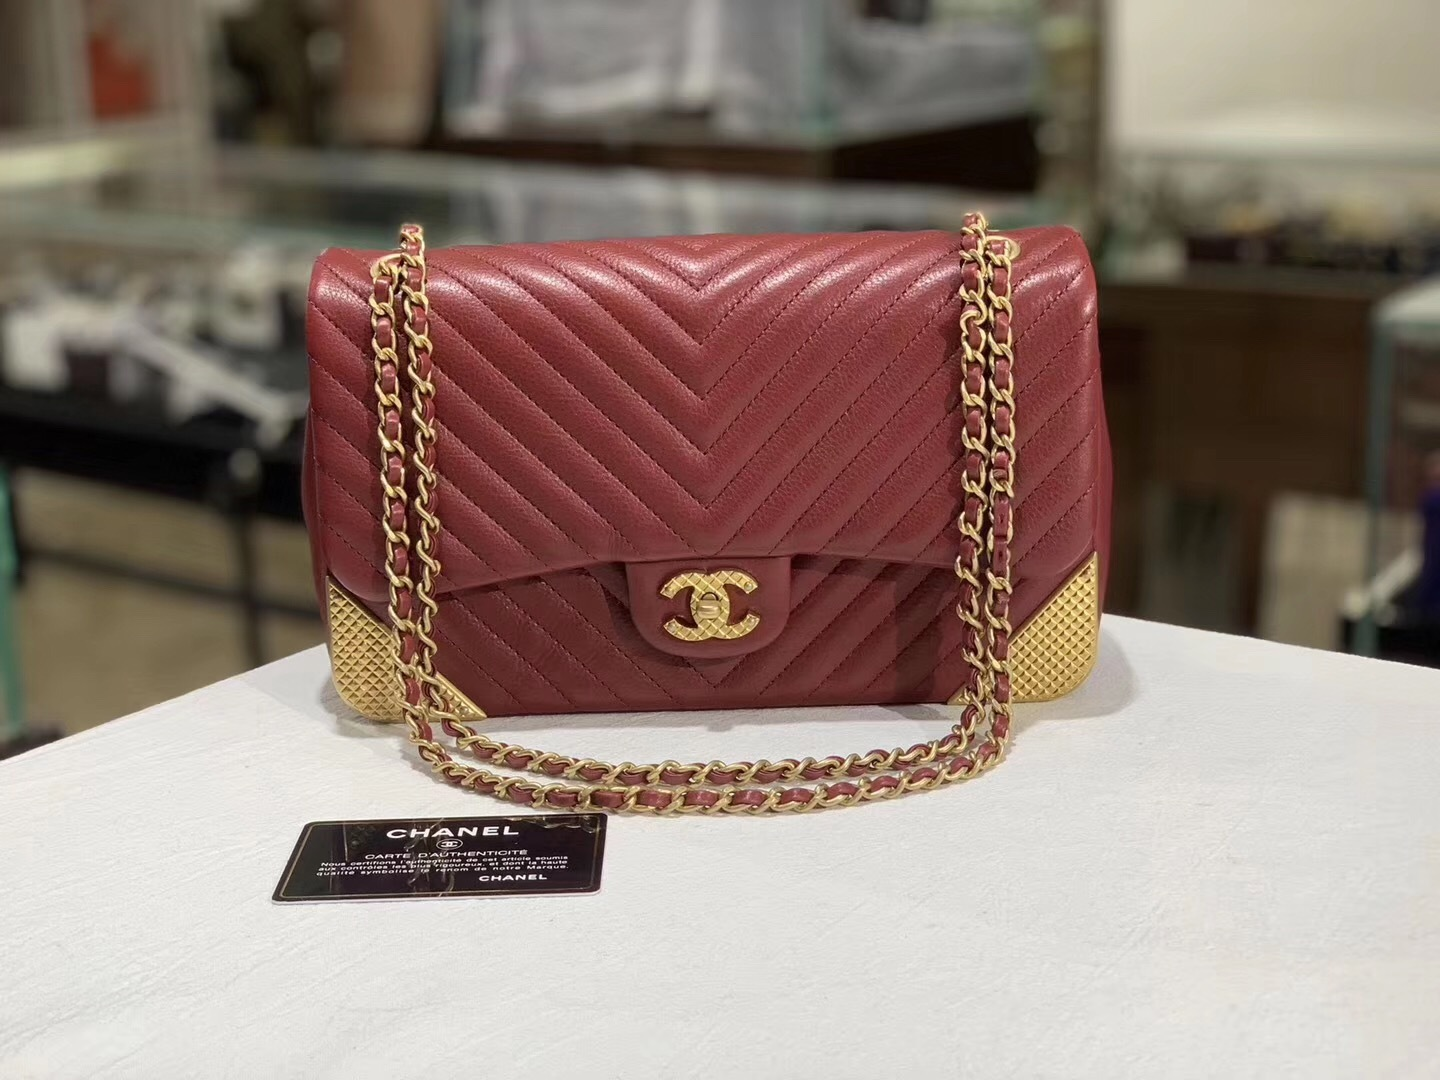 NEW AUTHENTIC CHANEL RED ROCK THE CORNER CHEVRON MEDIUM FLAP BAG GHW